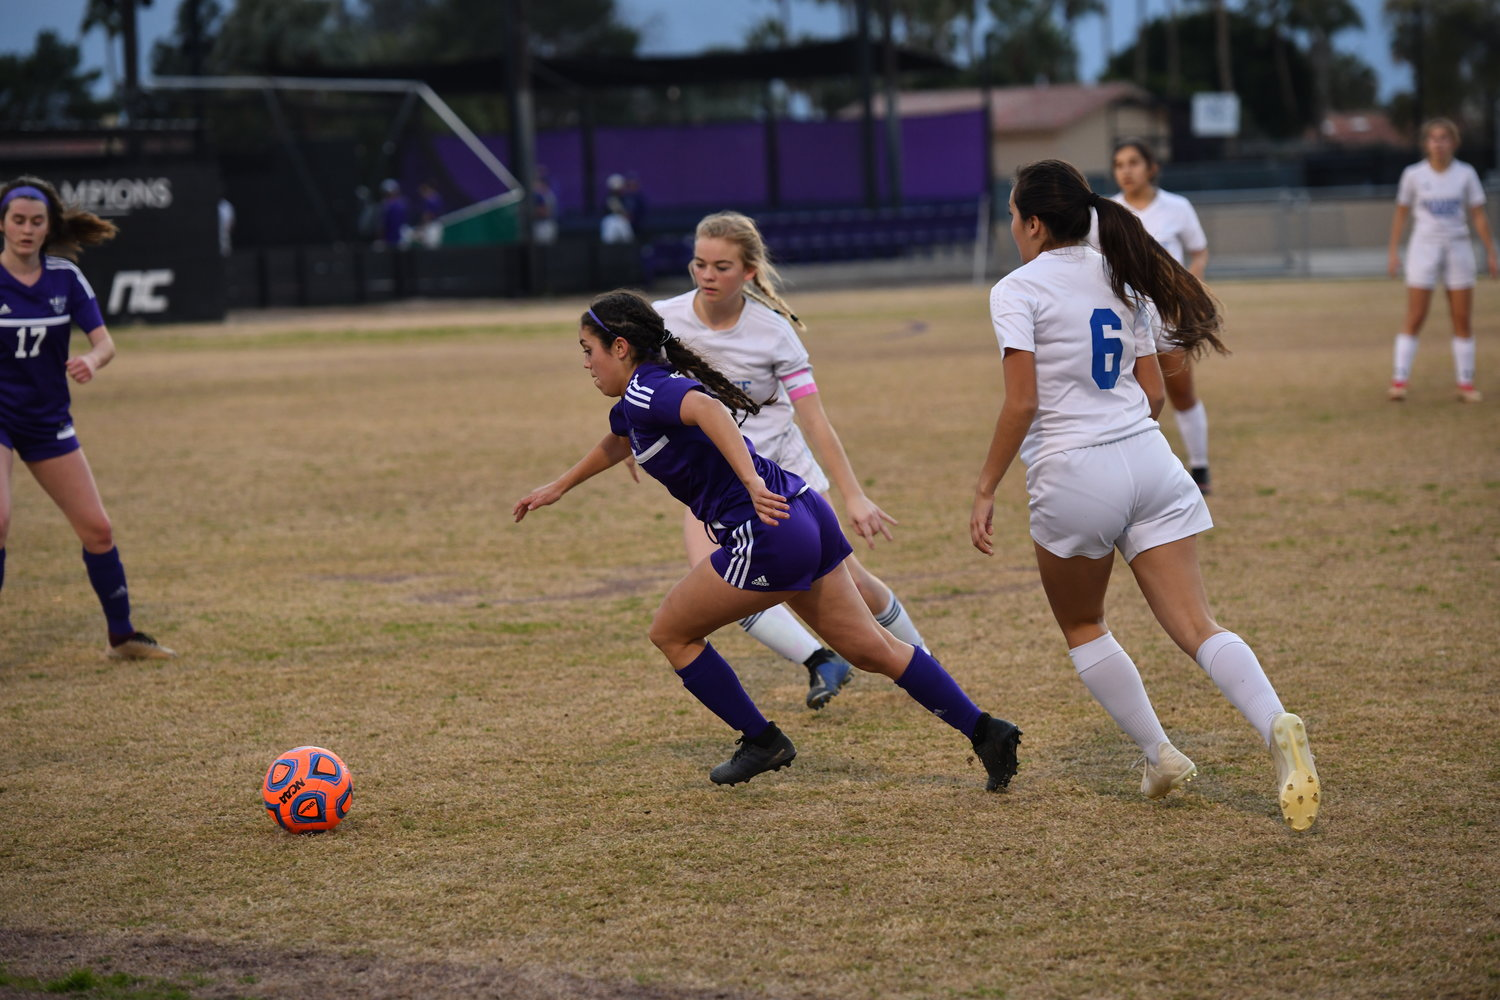 Paradise honors seniors Sierra Sweeney (facing camera) and Helen Grimaldo (#6) defend against Northwest Christian junior midfielder Savanna Ficarra during a 3A game at Northwest Christian School in Phoenix Jan. 9.